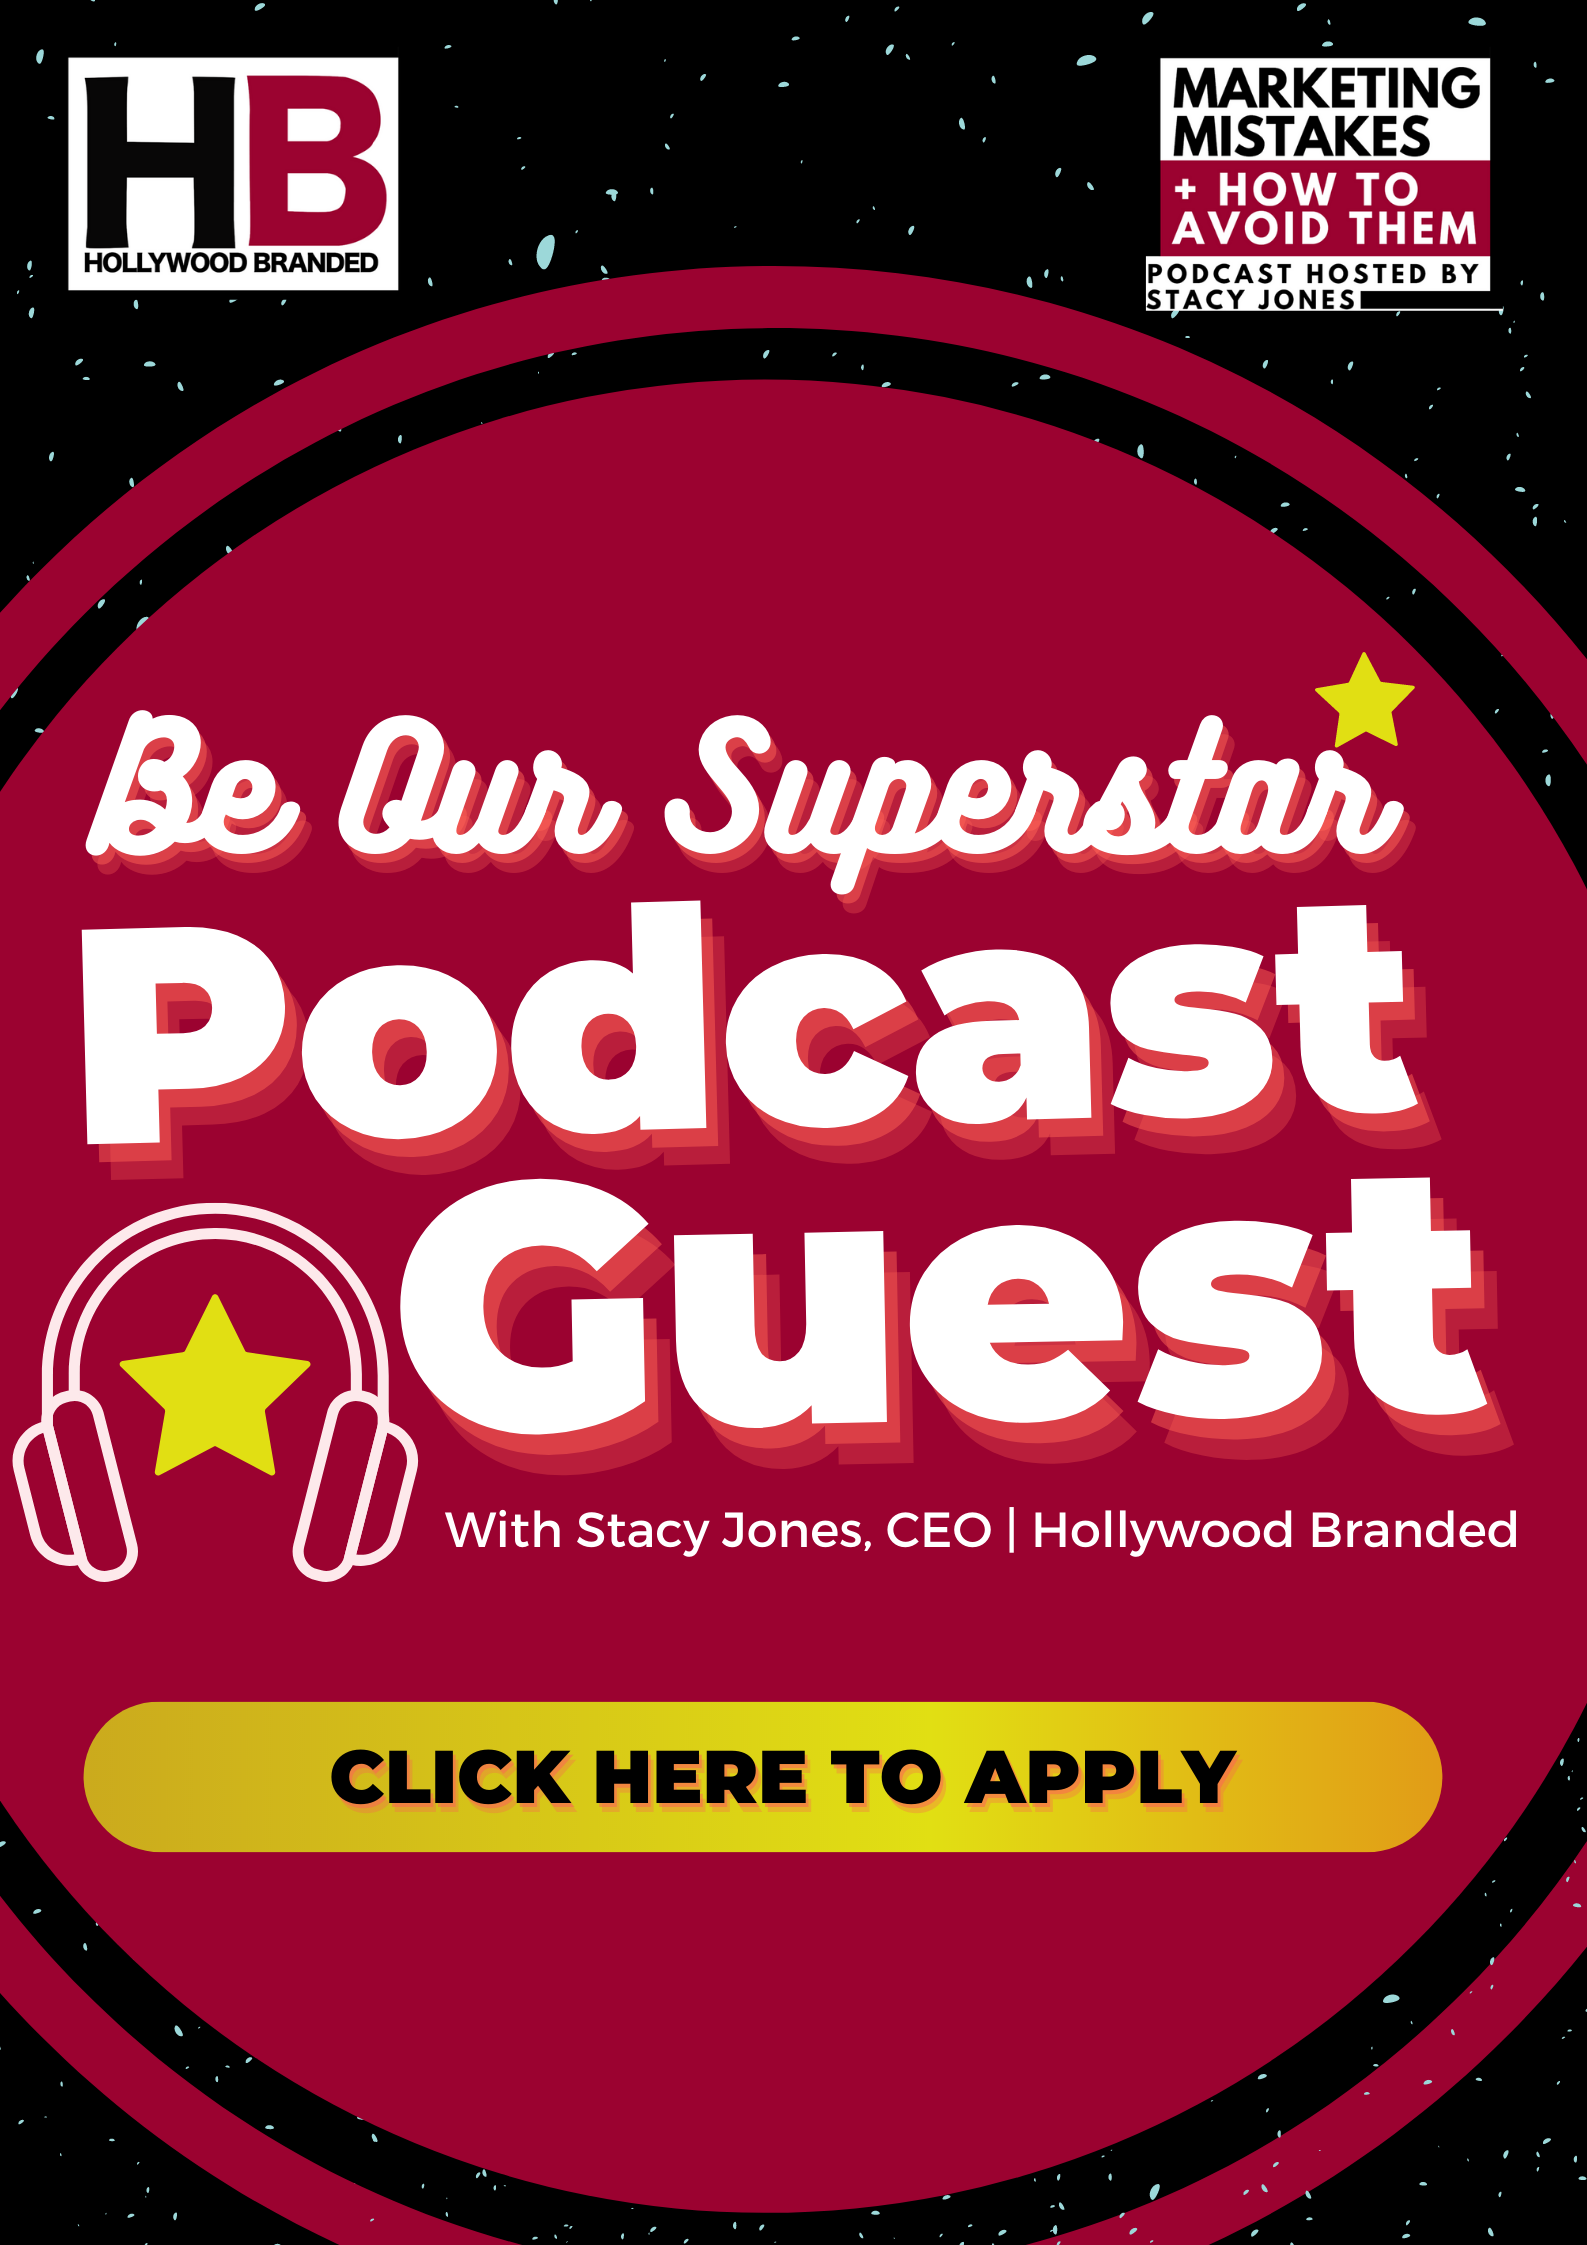 be our guest - Hollywood Branded marketing mistakes podcast